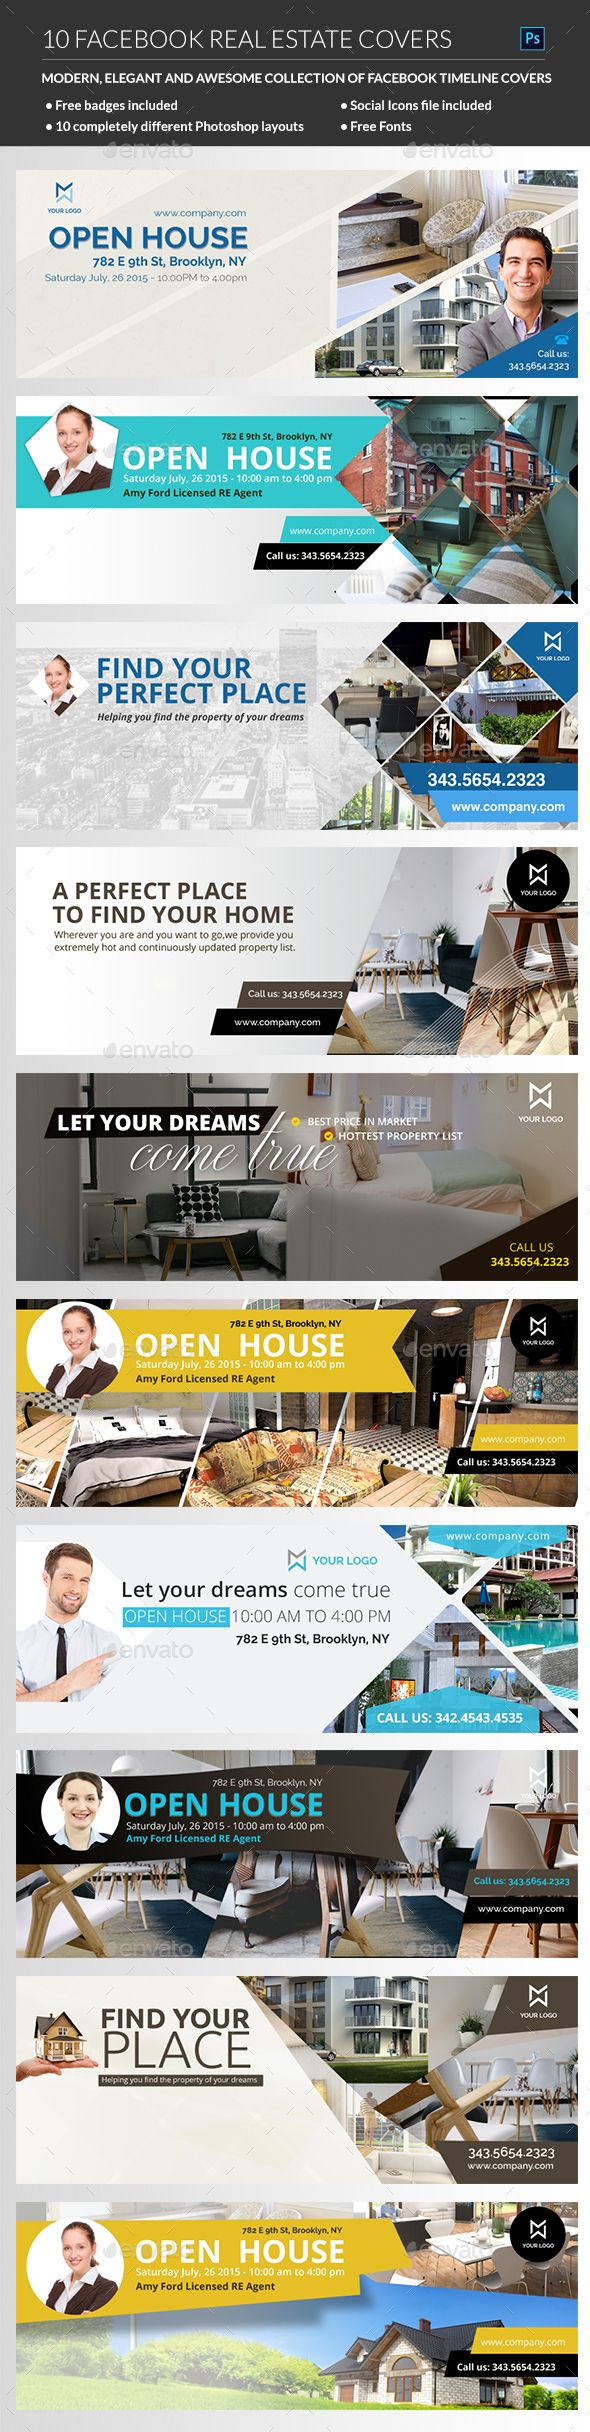 Real Estate Facebook Cover Template PSD. Download here: http://graphicriver.net/item/real-estate-facebook-cover/15405463?ref=ksioks